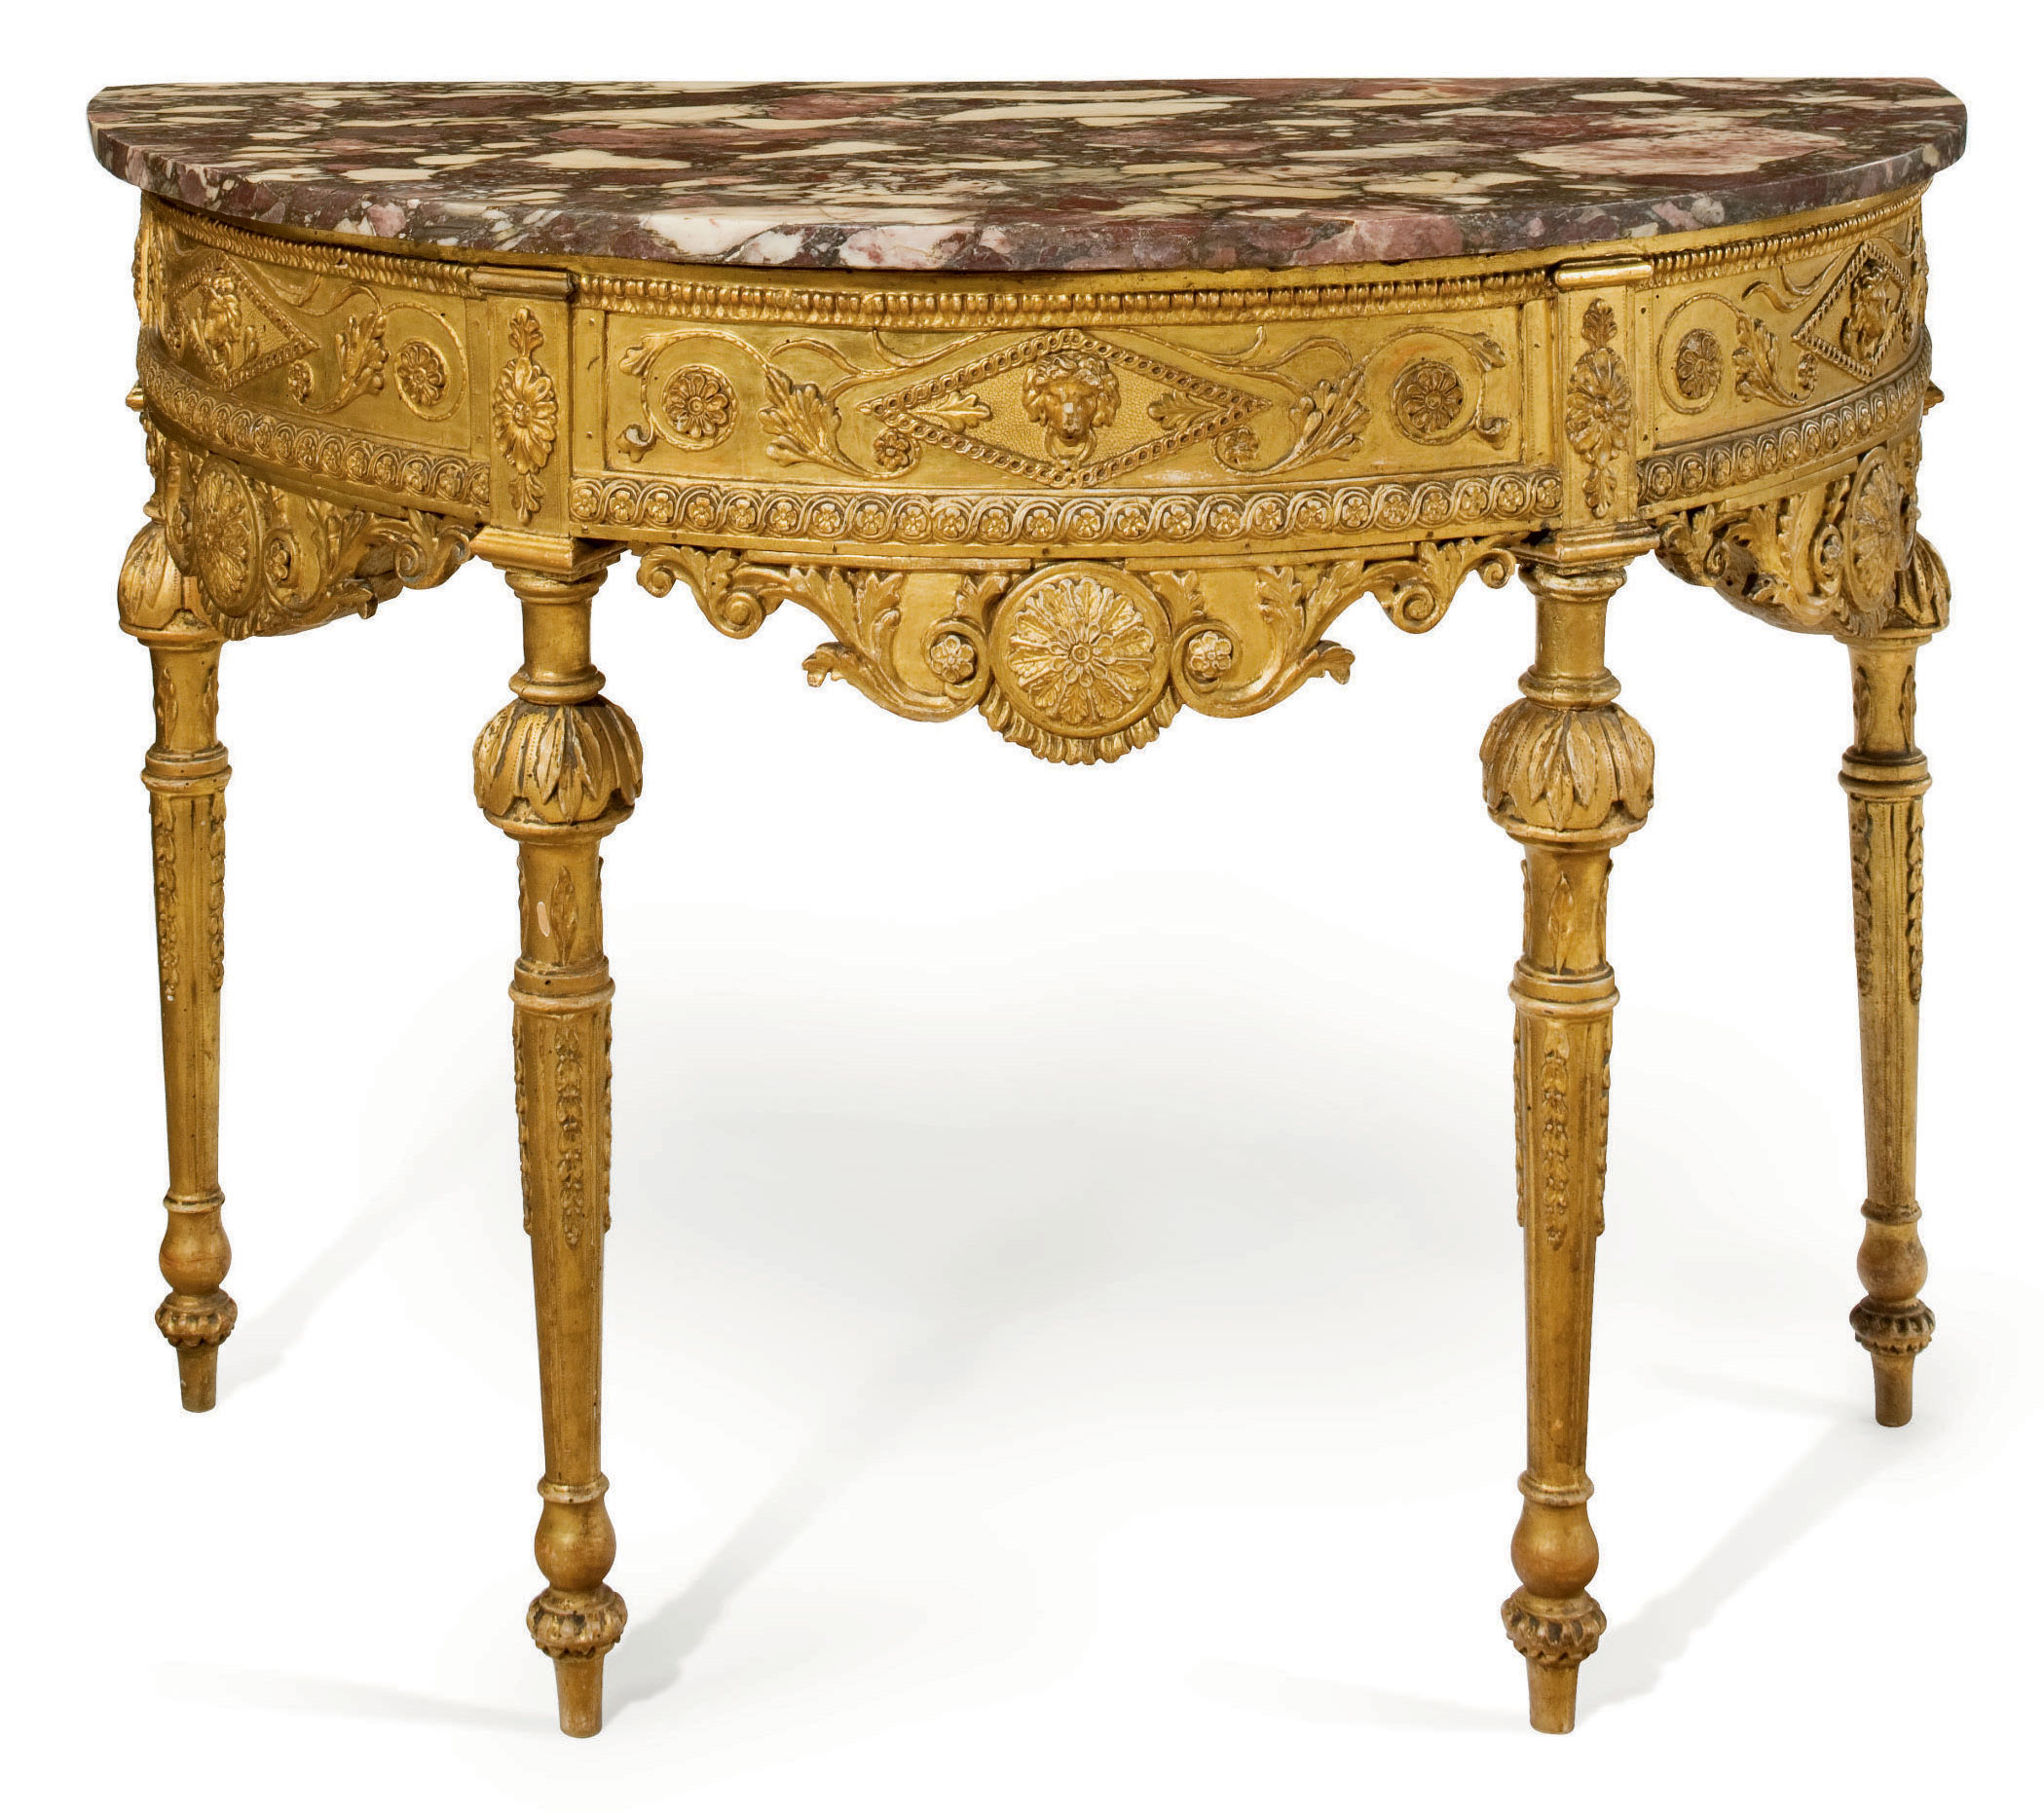 A NORTH ITALIAN GILTWOOD SIDE